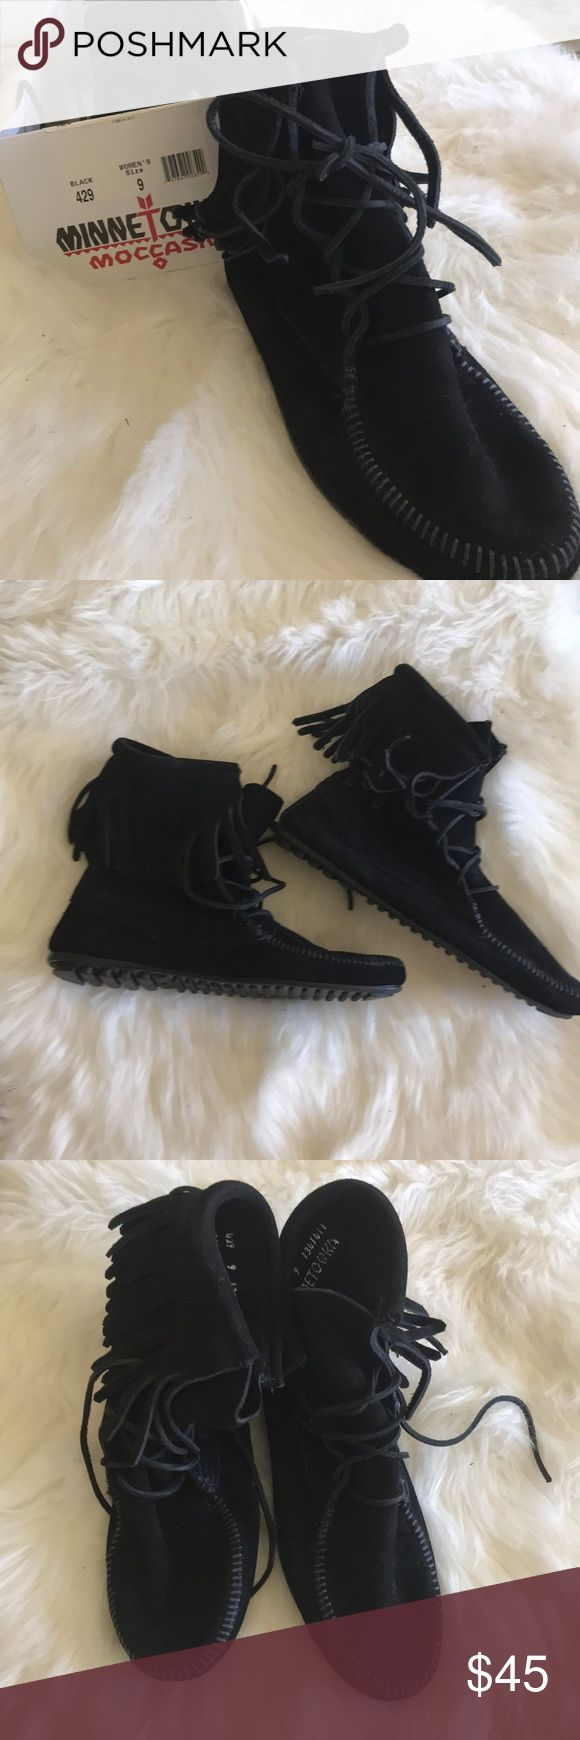 Black moccasin boots Barley worn black authentic moccasin boots for sale Minnetonka Shoes Moccasins